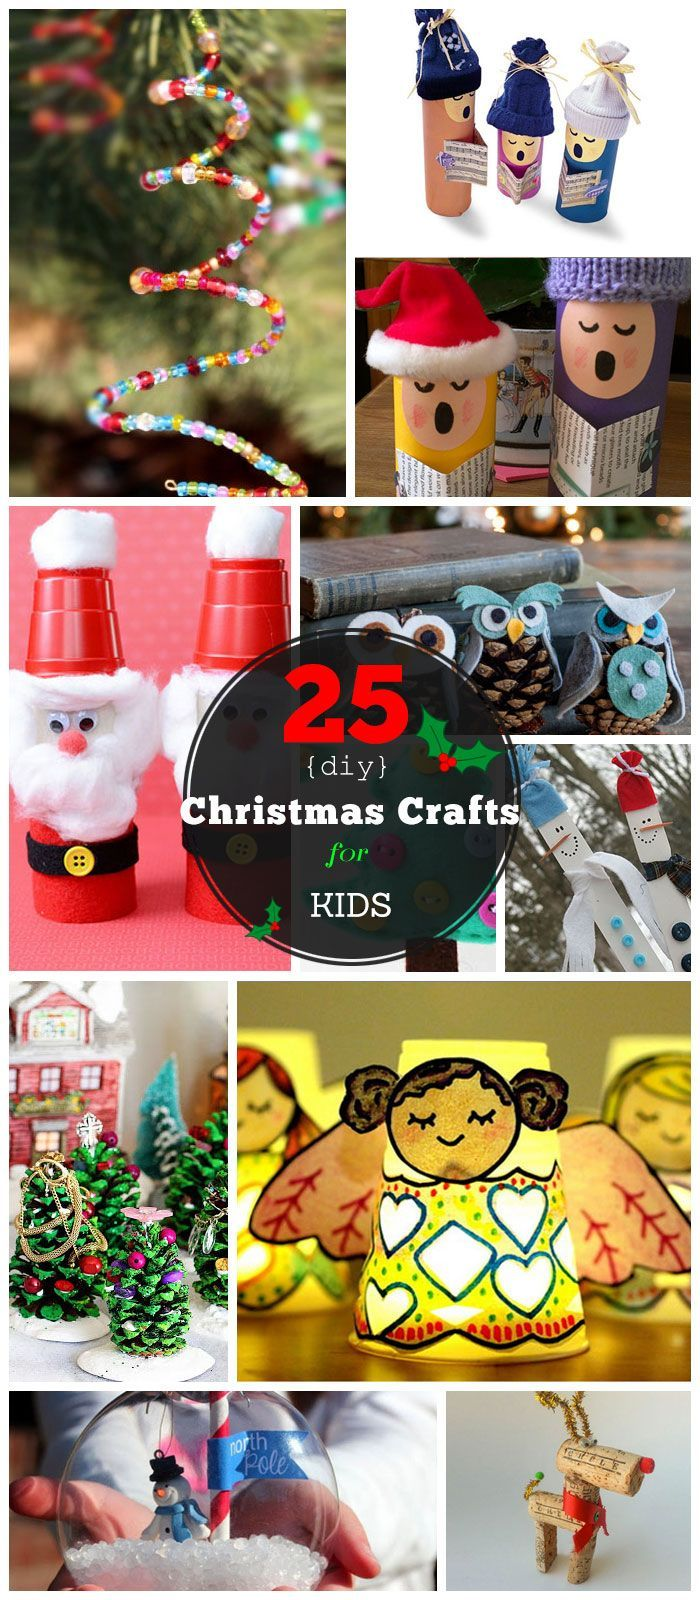 25 DIY Christmas Crafts for Kids #diy #christmas #crafts #christmascrafts